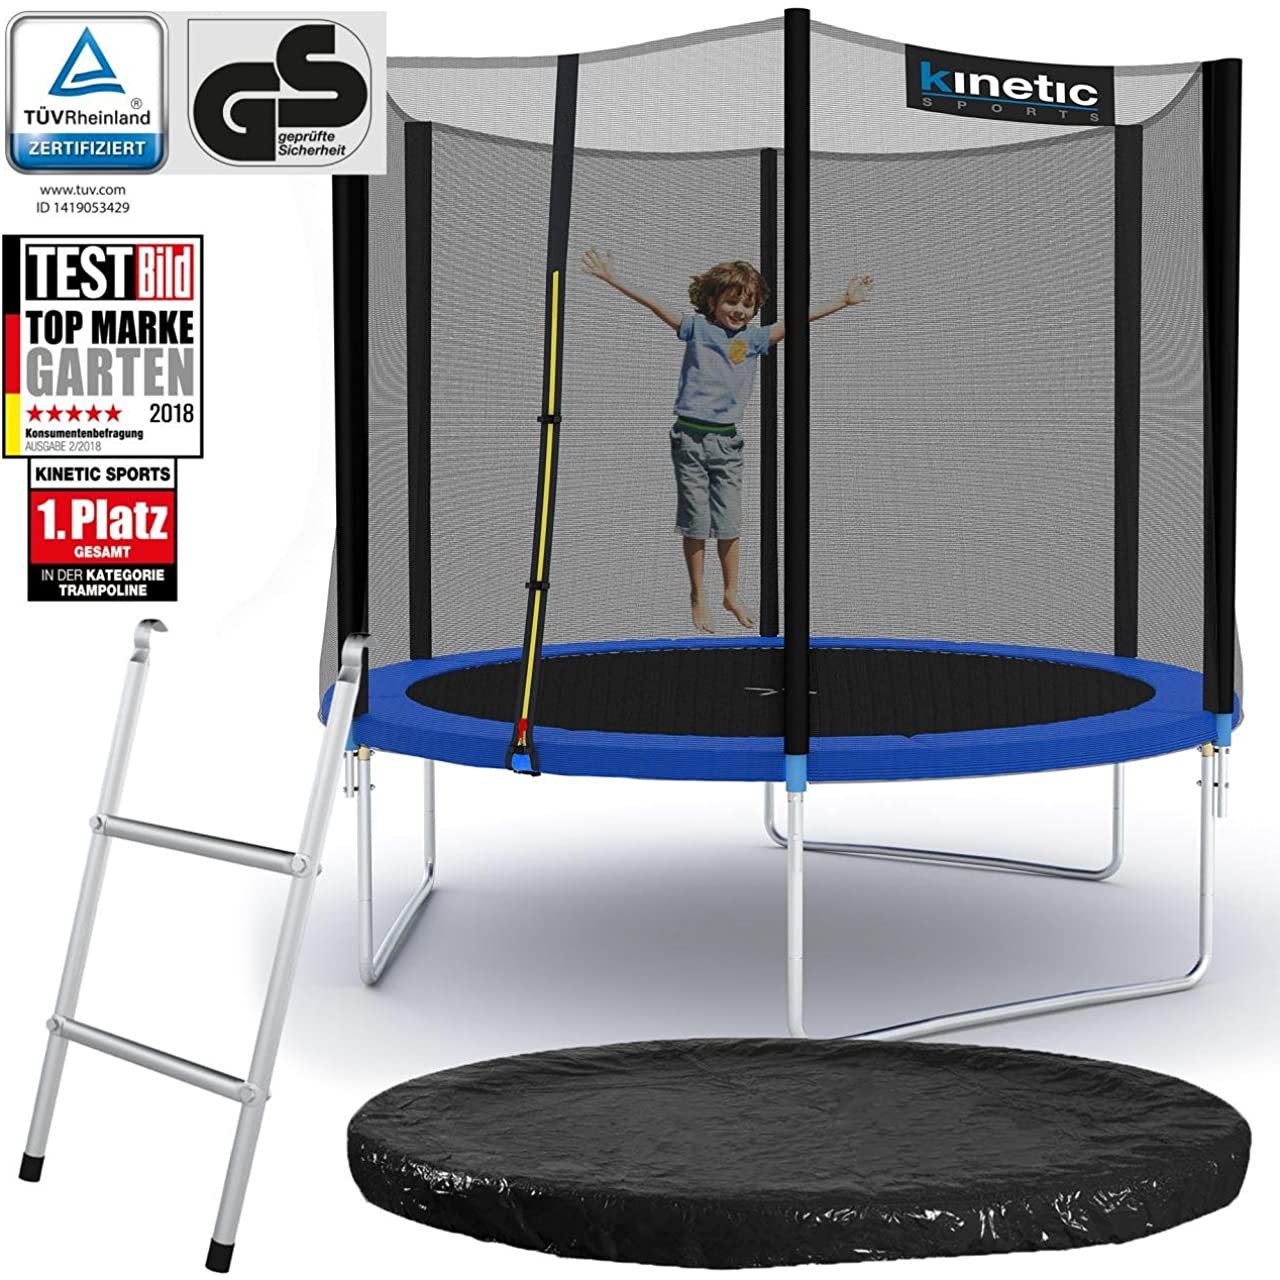 gartentrampolin test alle modelle f r 2018 im test. Black Bedroom Furniture Sets. Home Design Ideas